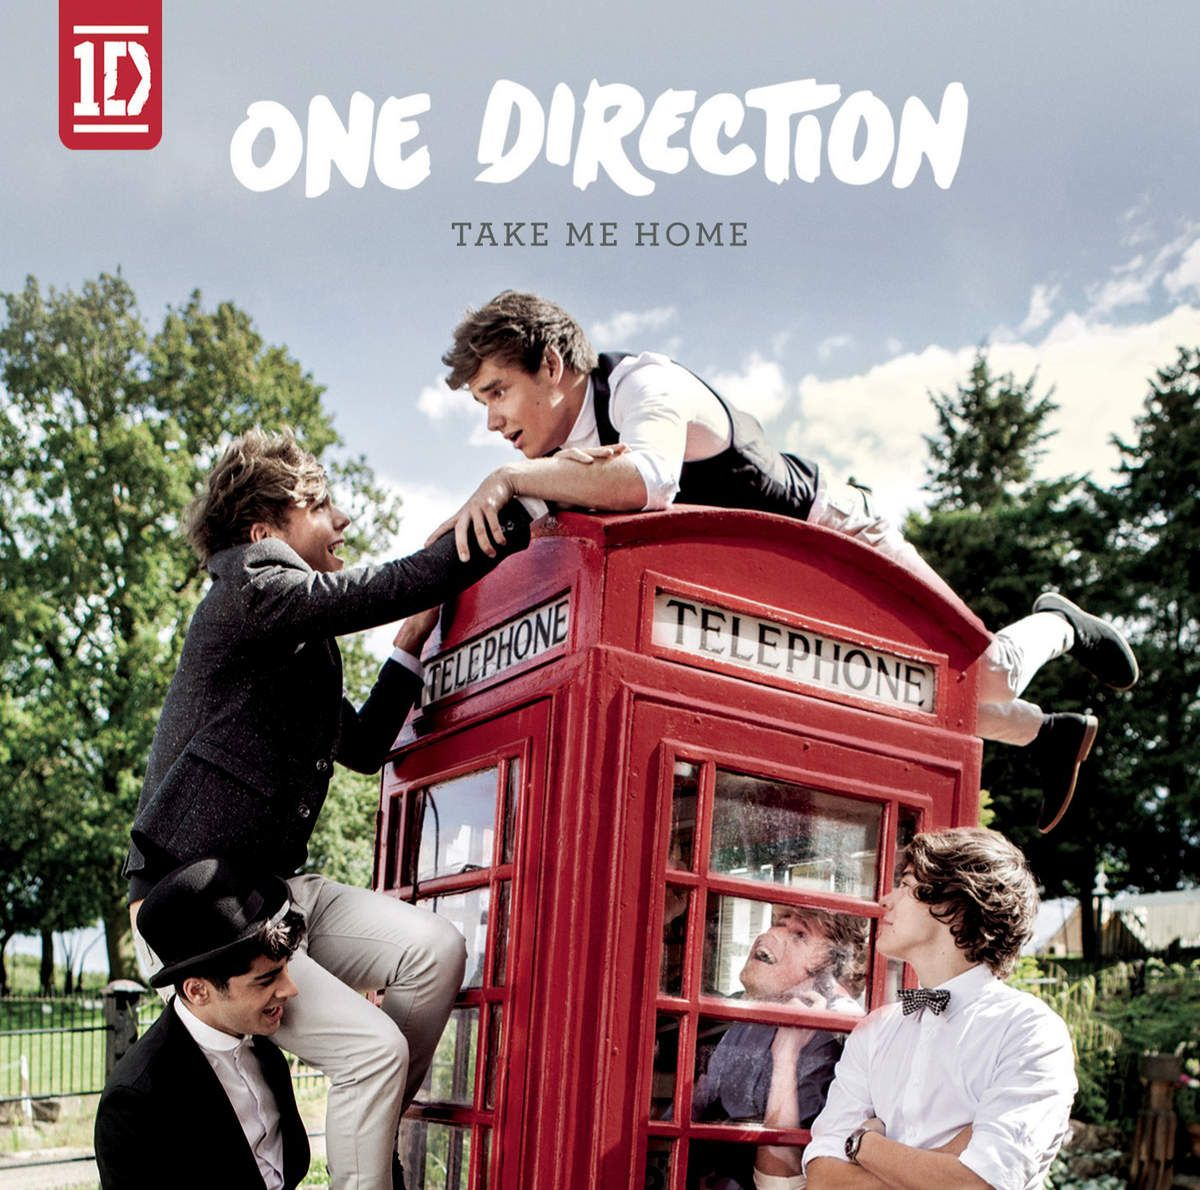 One Direction - Take Me Home album cover